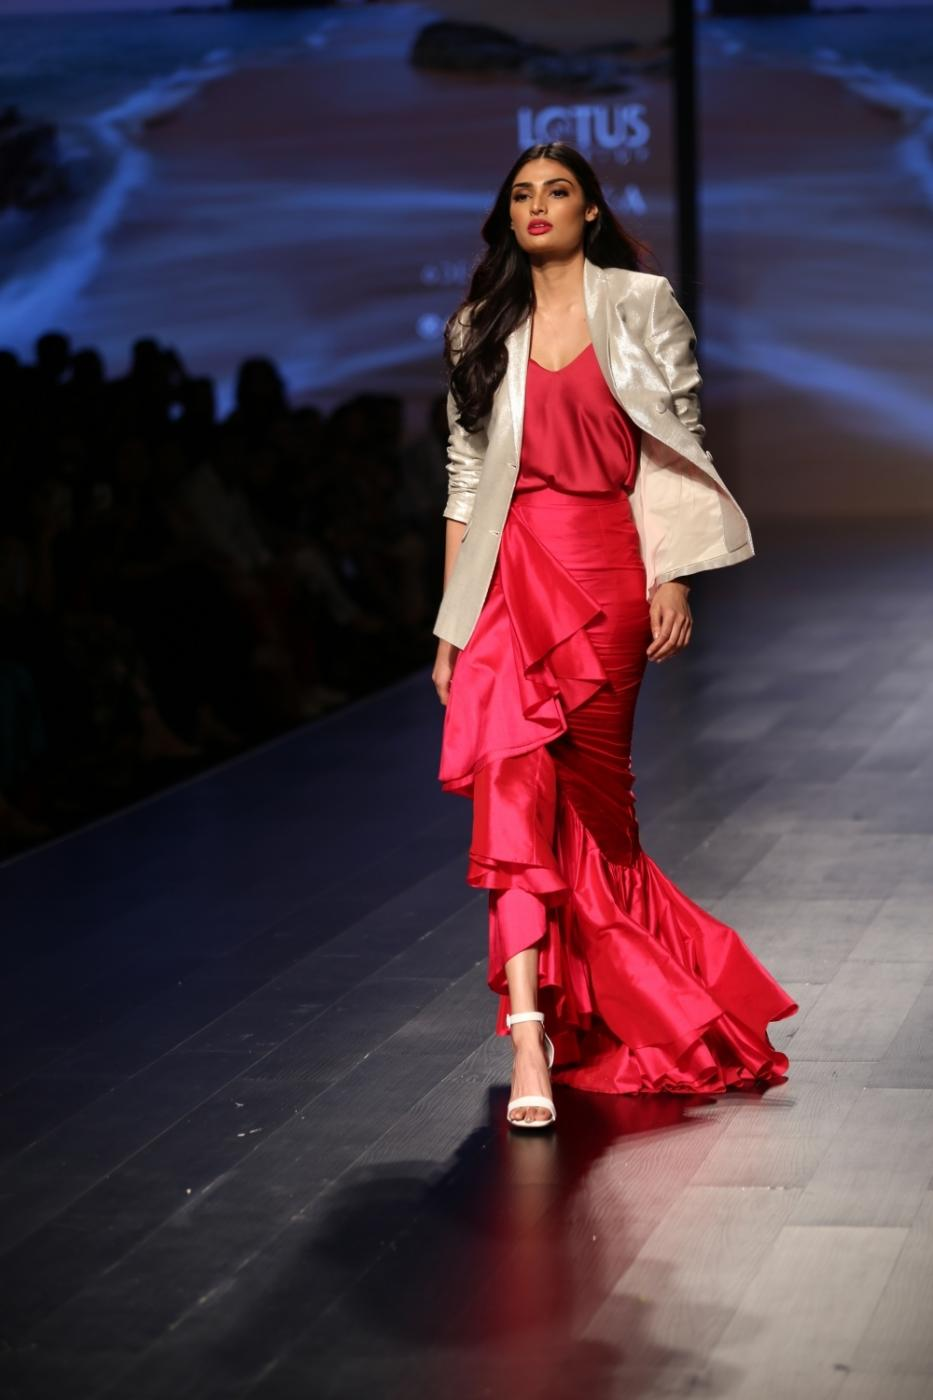 New Delhi: Actress Athiya Shetty showcase creations of designer Poshpride during Lotus Make-Up India Fashion Week Spring Summer 2019 in New Delhi on Oct 12, 2018.(Photo: Amlan Paliwal/IANS) by .